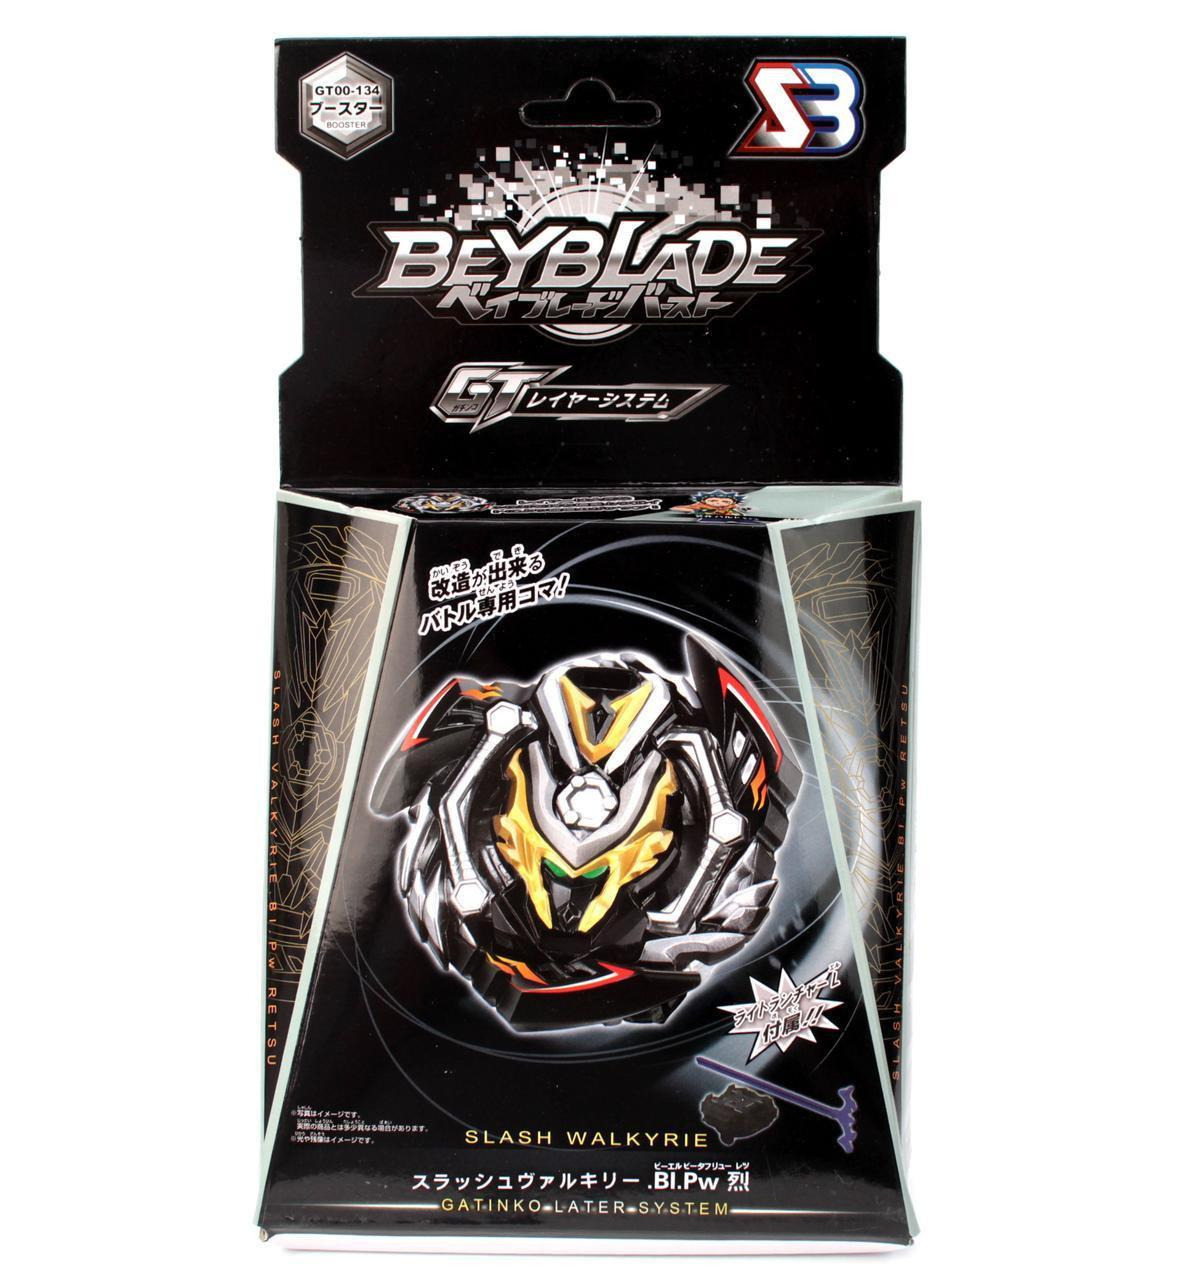 Бейблейд Слэш Волтраек beyblade Slash Valkyrie Black  B-134 SB